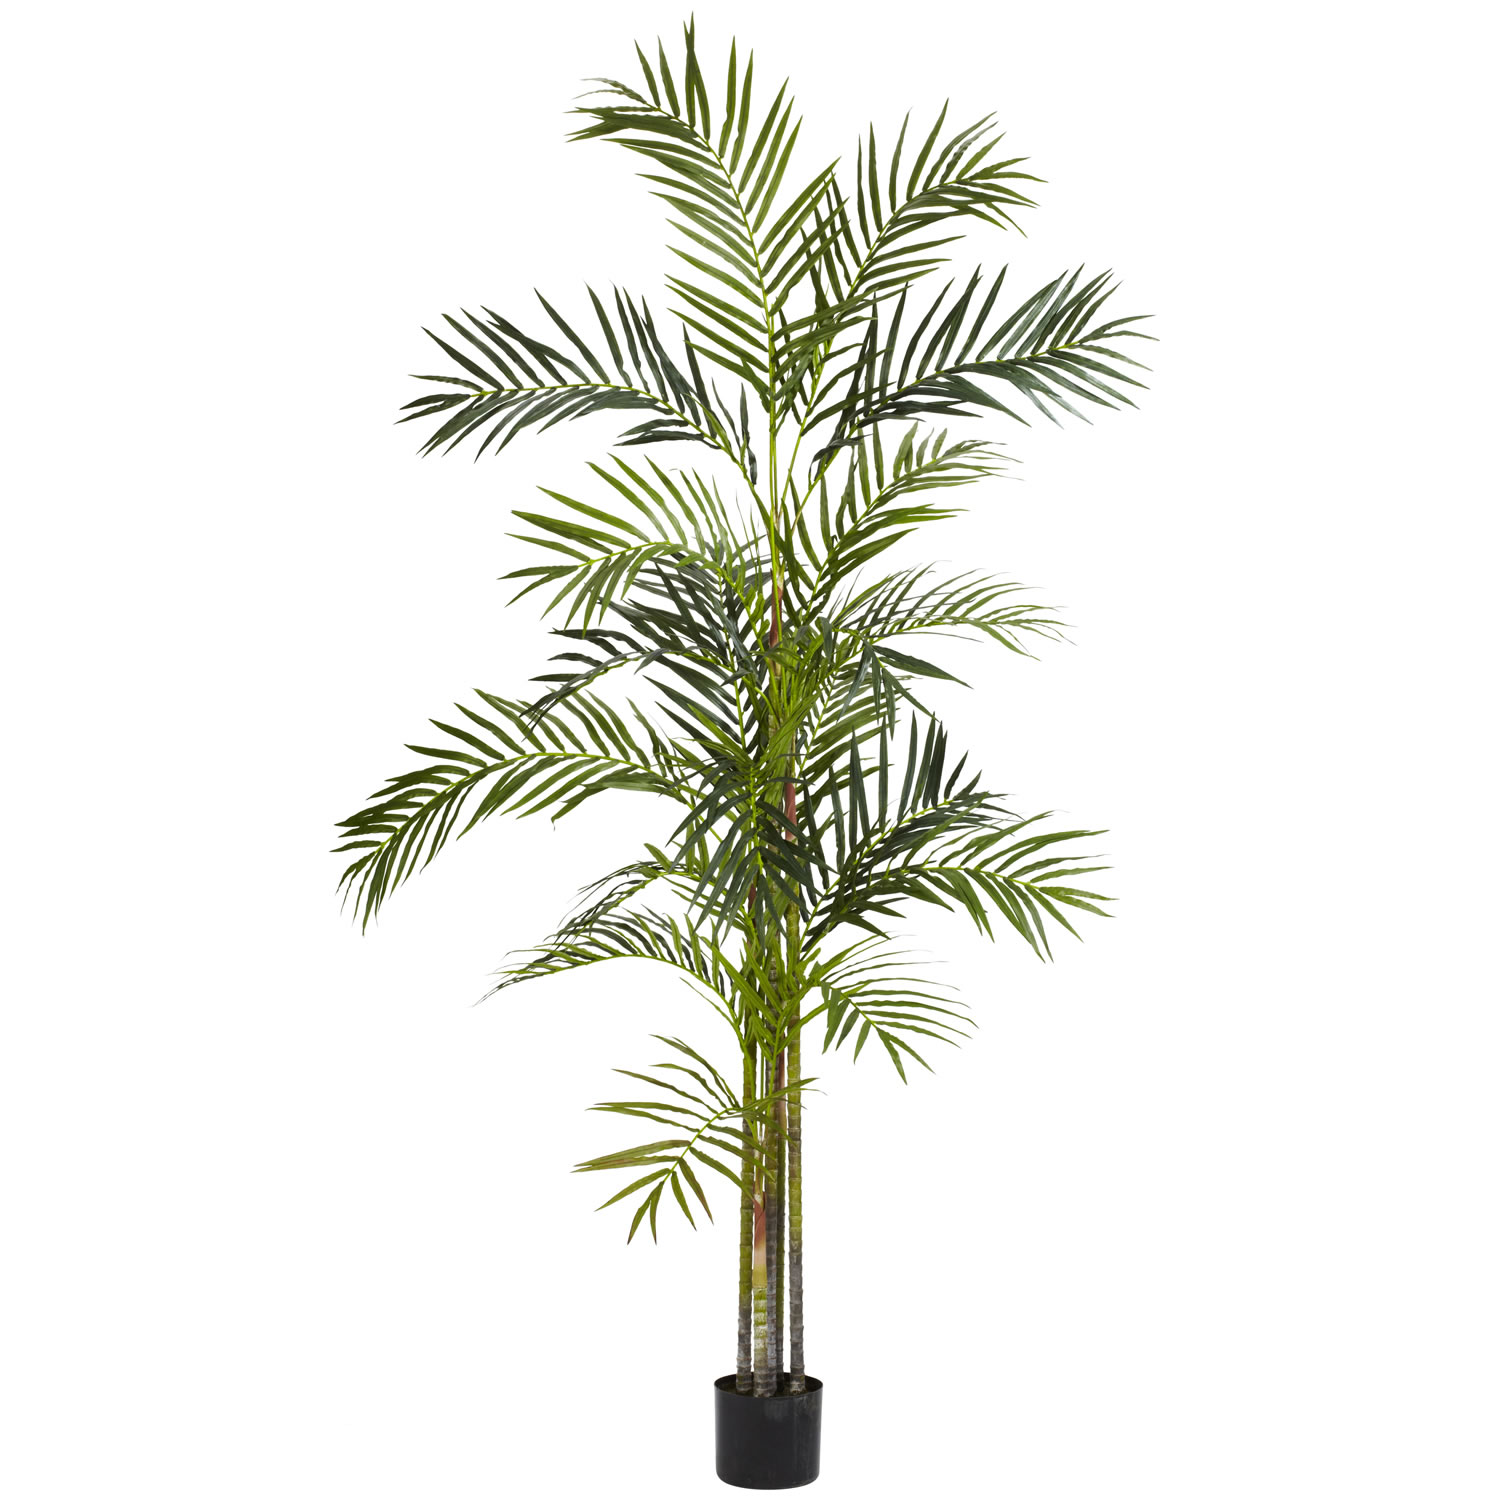 6 foot Areca Palm Tree: Potted | 5316